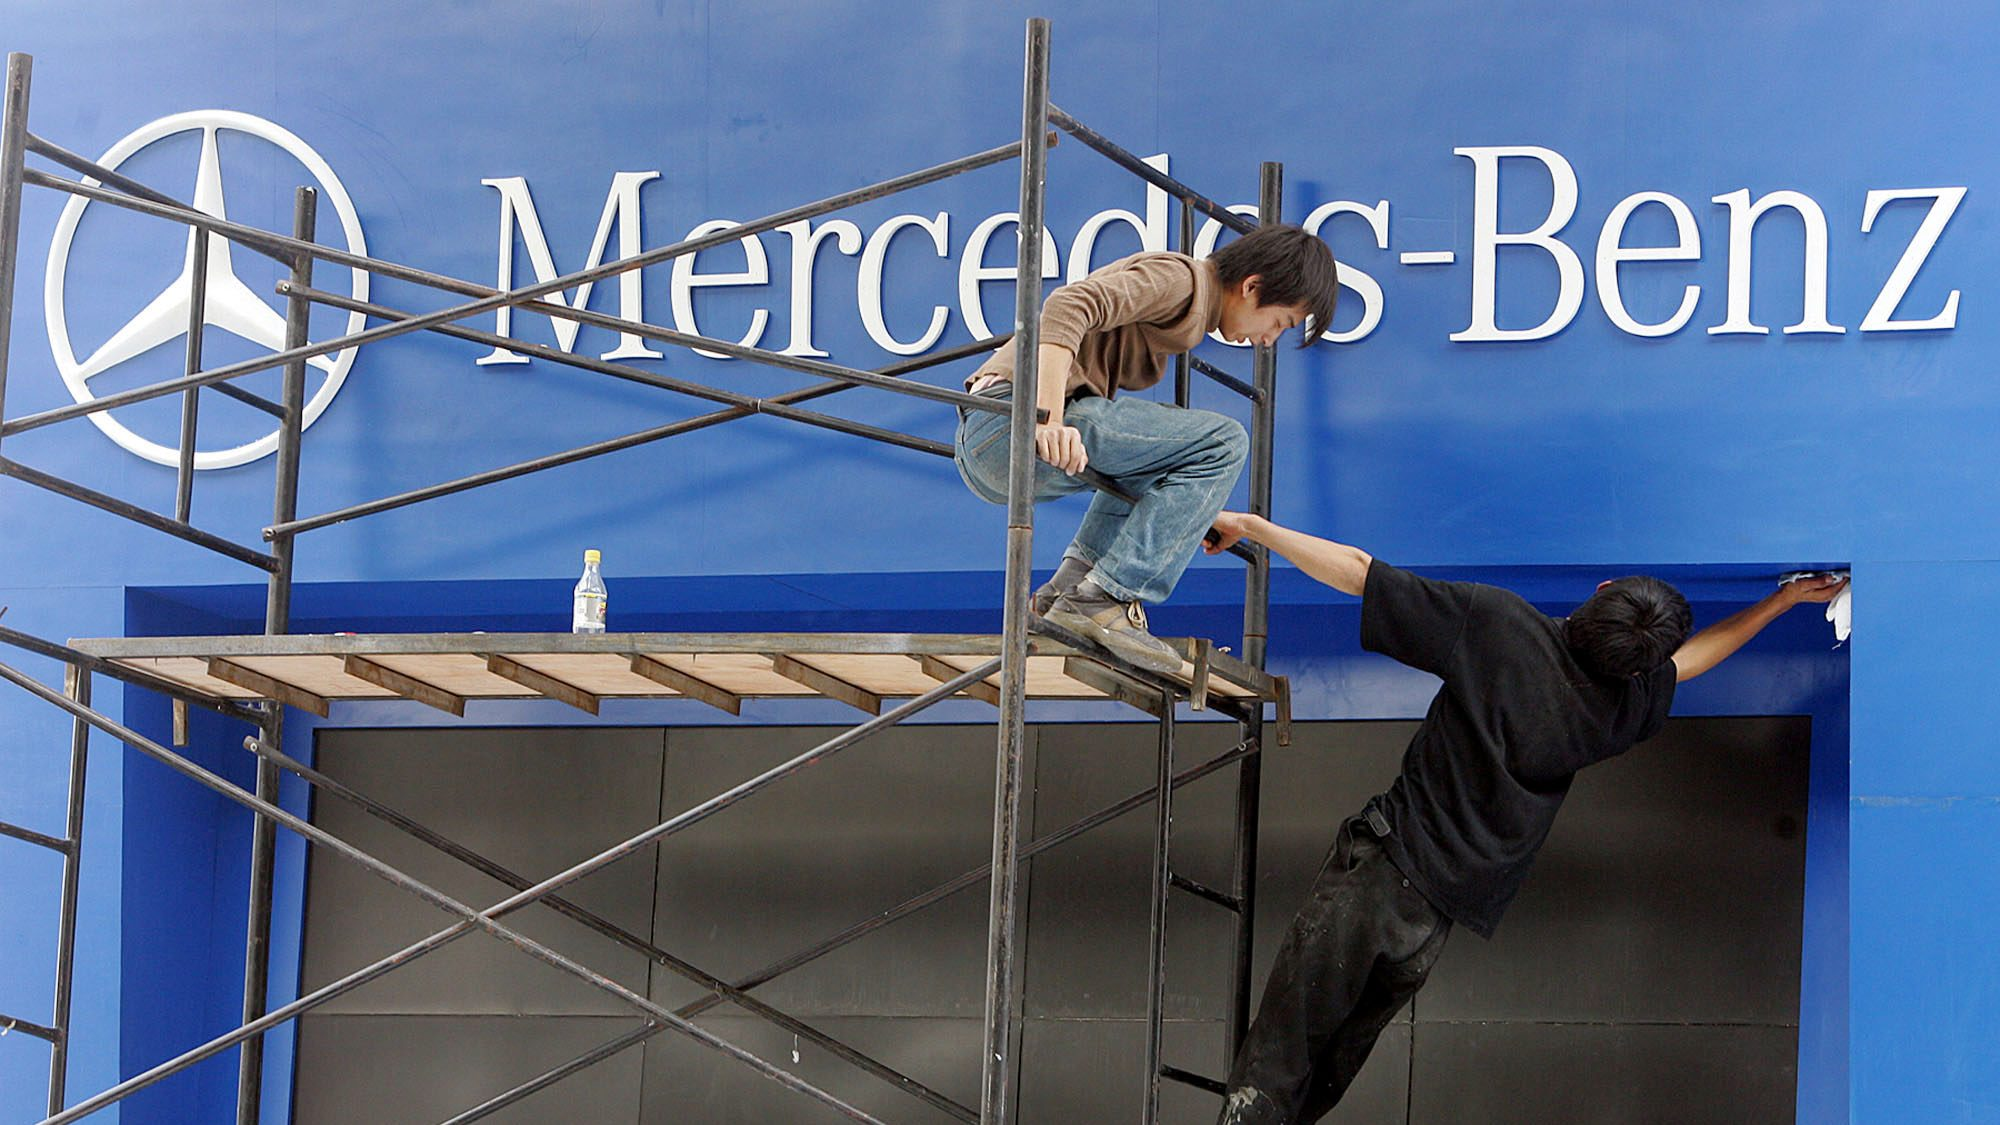 Chinese workers prepare sign of Mercedes-Benz, one of the popular cars among Chinese new wealthy upper class, Wednesday April 20, 2005 at an auto show in Shanghai, China. The Chinese economy grew by 9.5 percent in the fourth quarter of 2004 from a year earlier. The government's official target for growth is 8 percent a year.